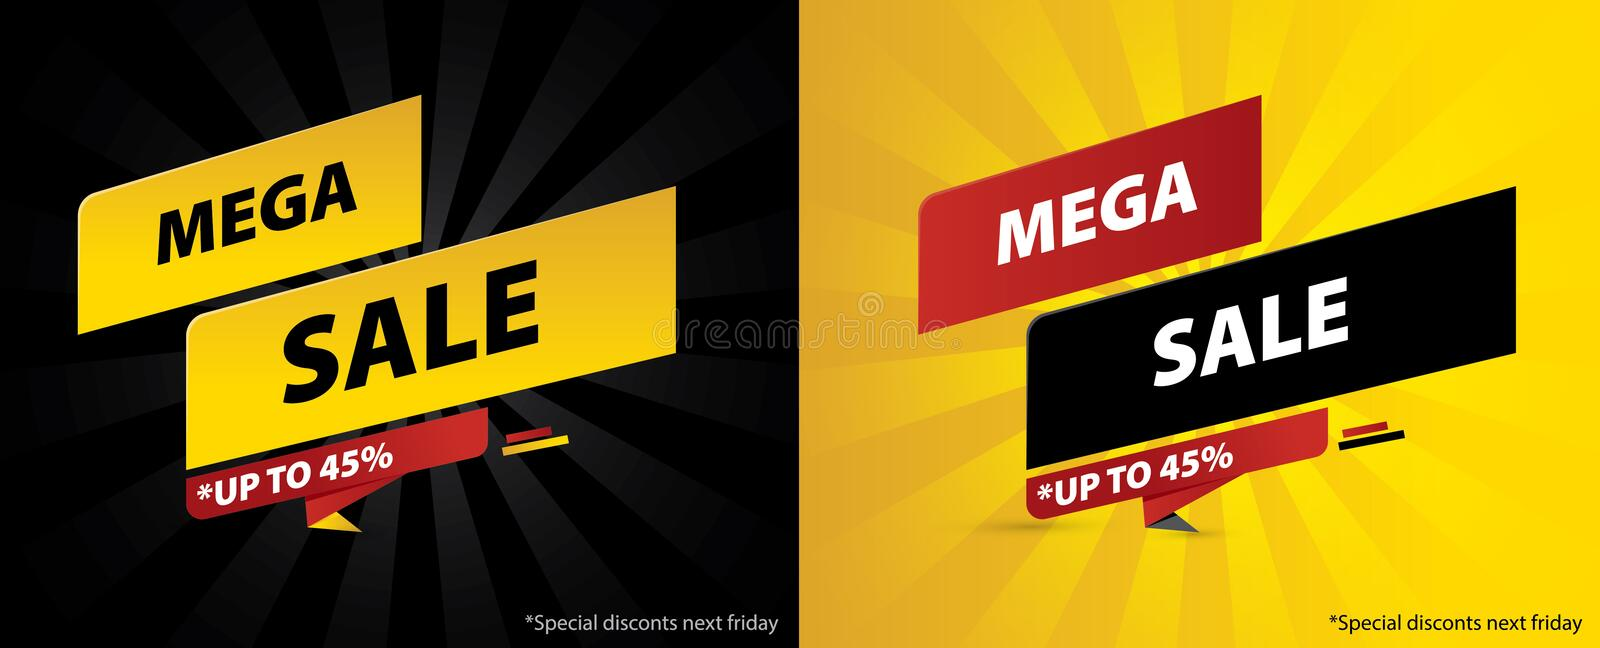 Exclusive sales discount promotion banner design. Template for store stickers, web banners, social media posts or printing on post vector illustration